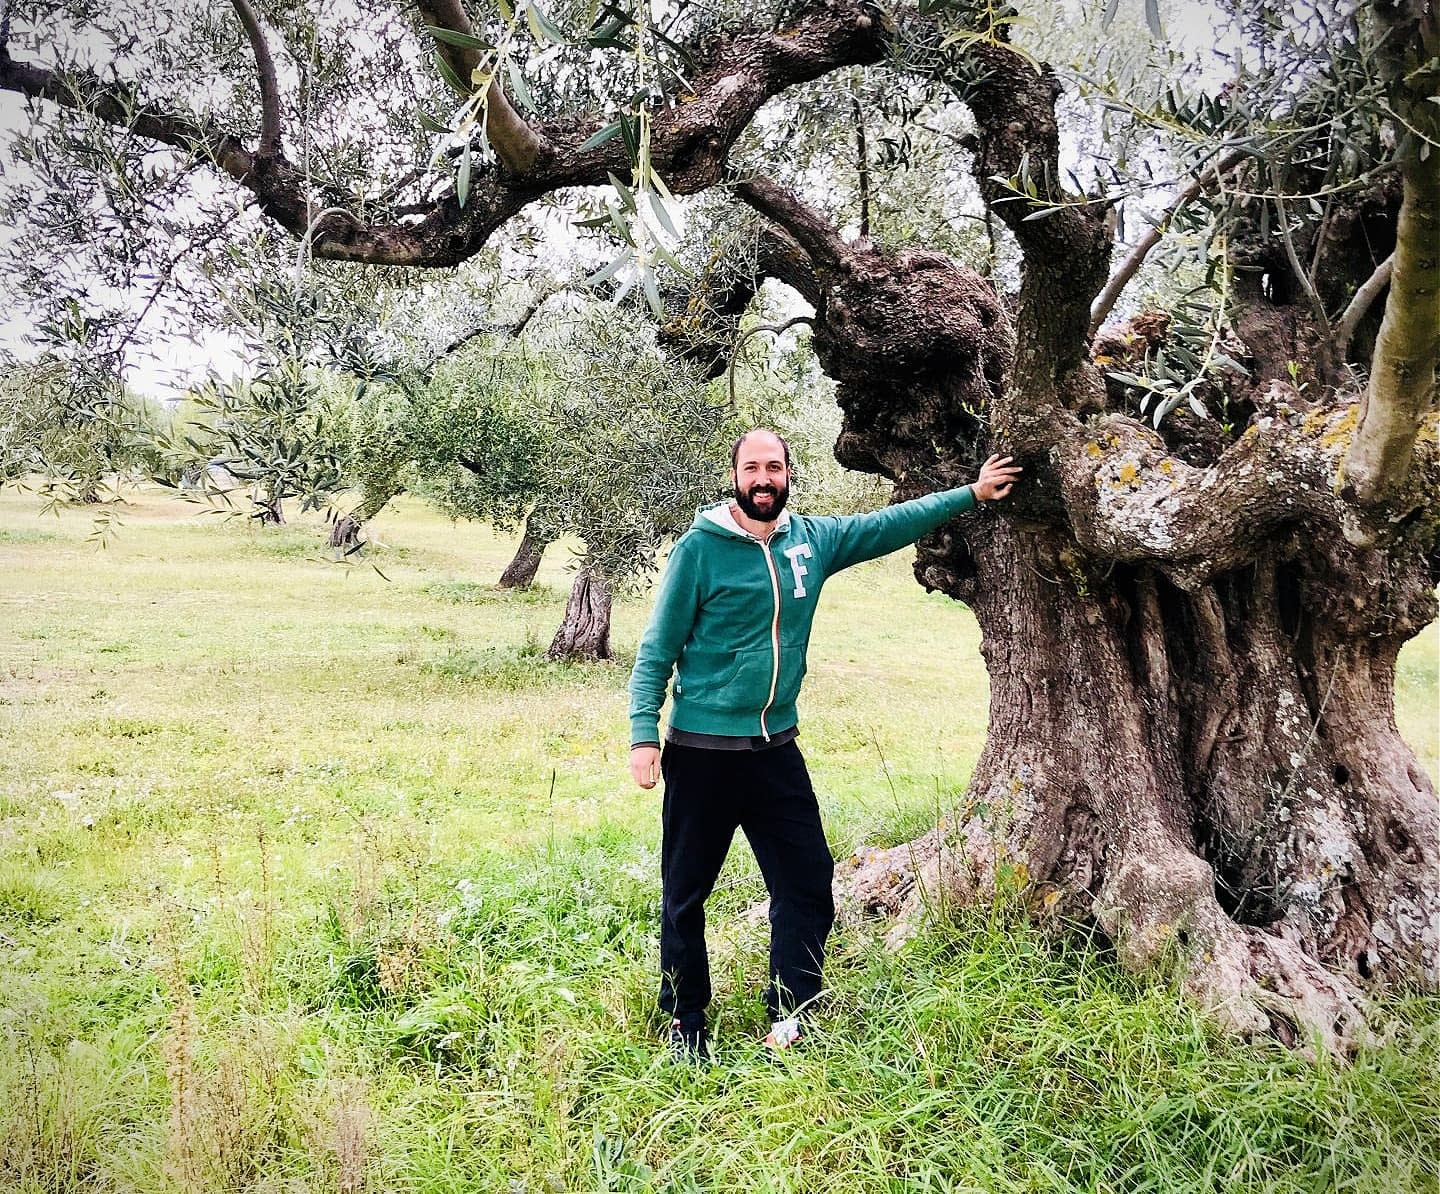 business-europe-new-eu-ag-policy-could-benefit-greek-olive-growers-if-requirements-are-met-olive-oil-times